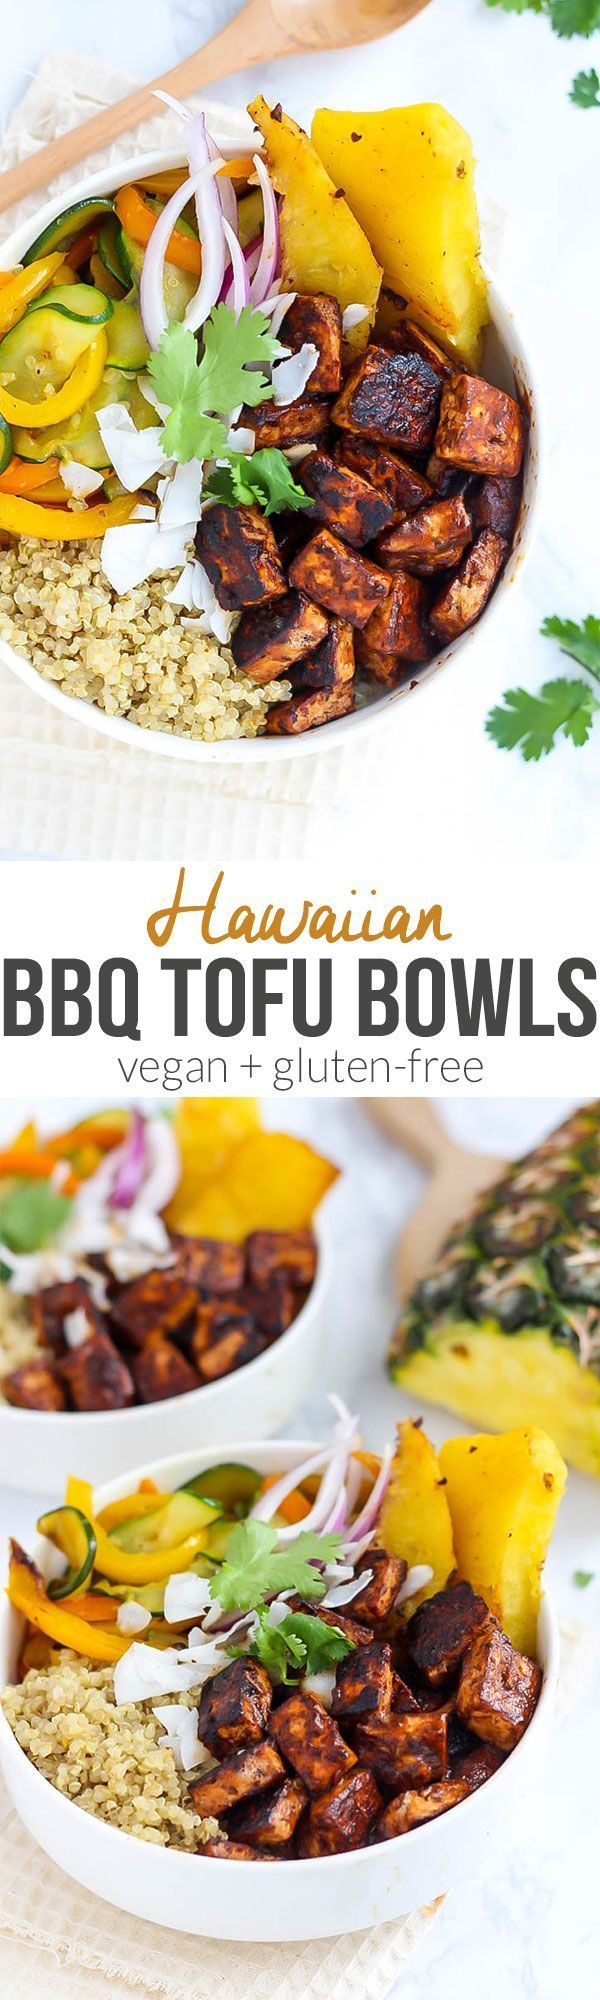 Hawaiian bbq tofu bowls recipe culinary inspiration pinterest vegan hawaiian bbq tofu bowls packed with flavor and crispy tofu guest post recipe by emilie eats forumfinder Image collections